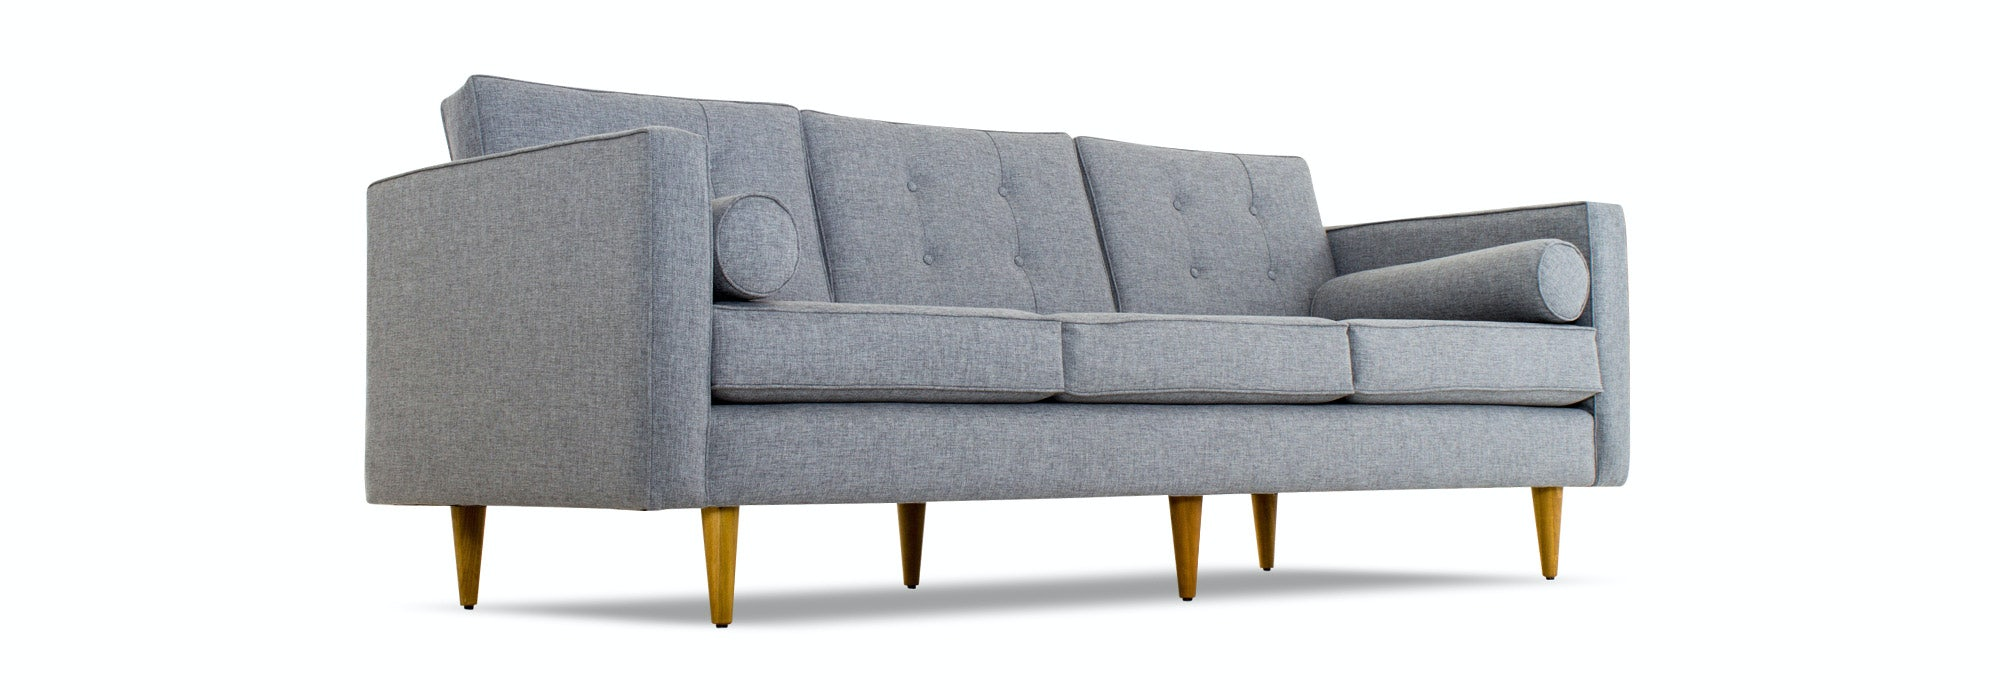 Amazing Braxton Sofa Evergreenethics Interior Chair Design Evergreenethicsorg